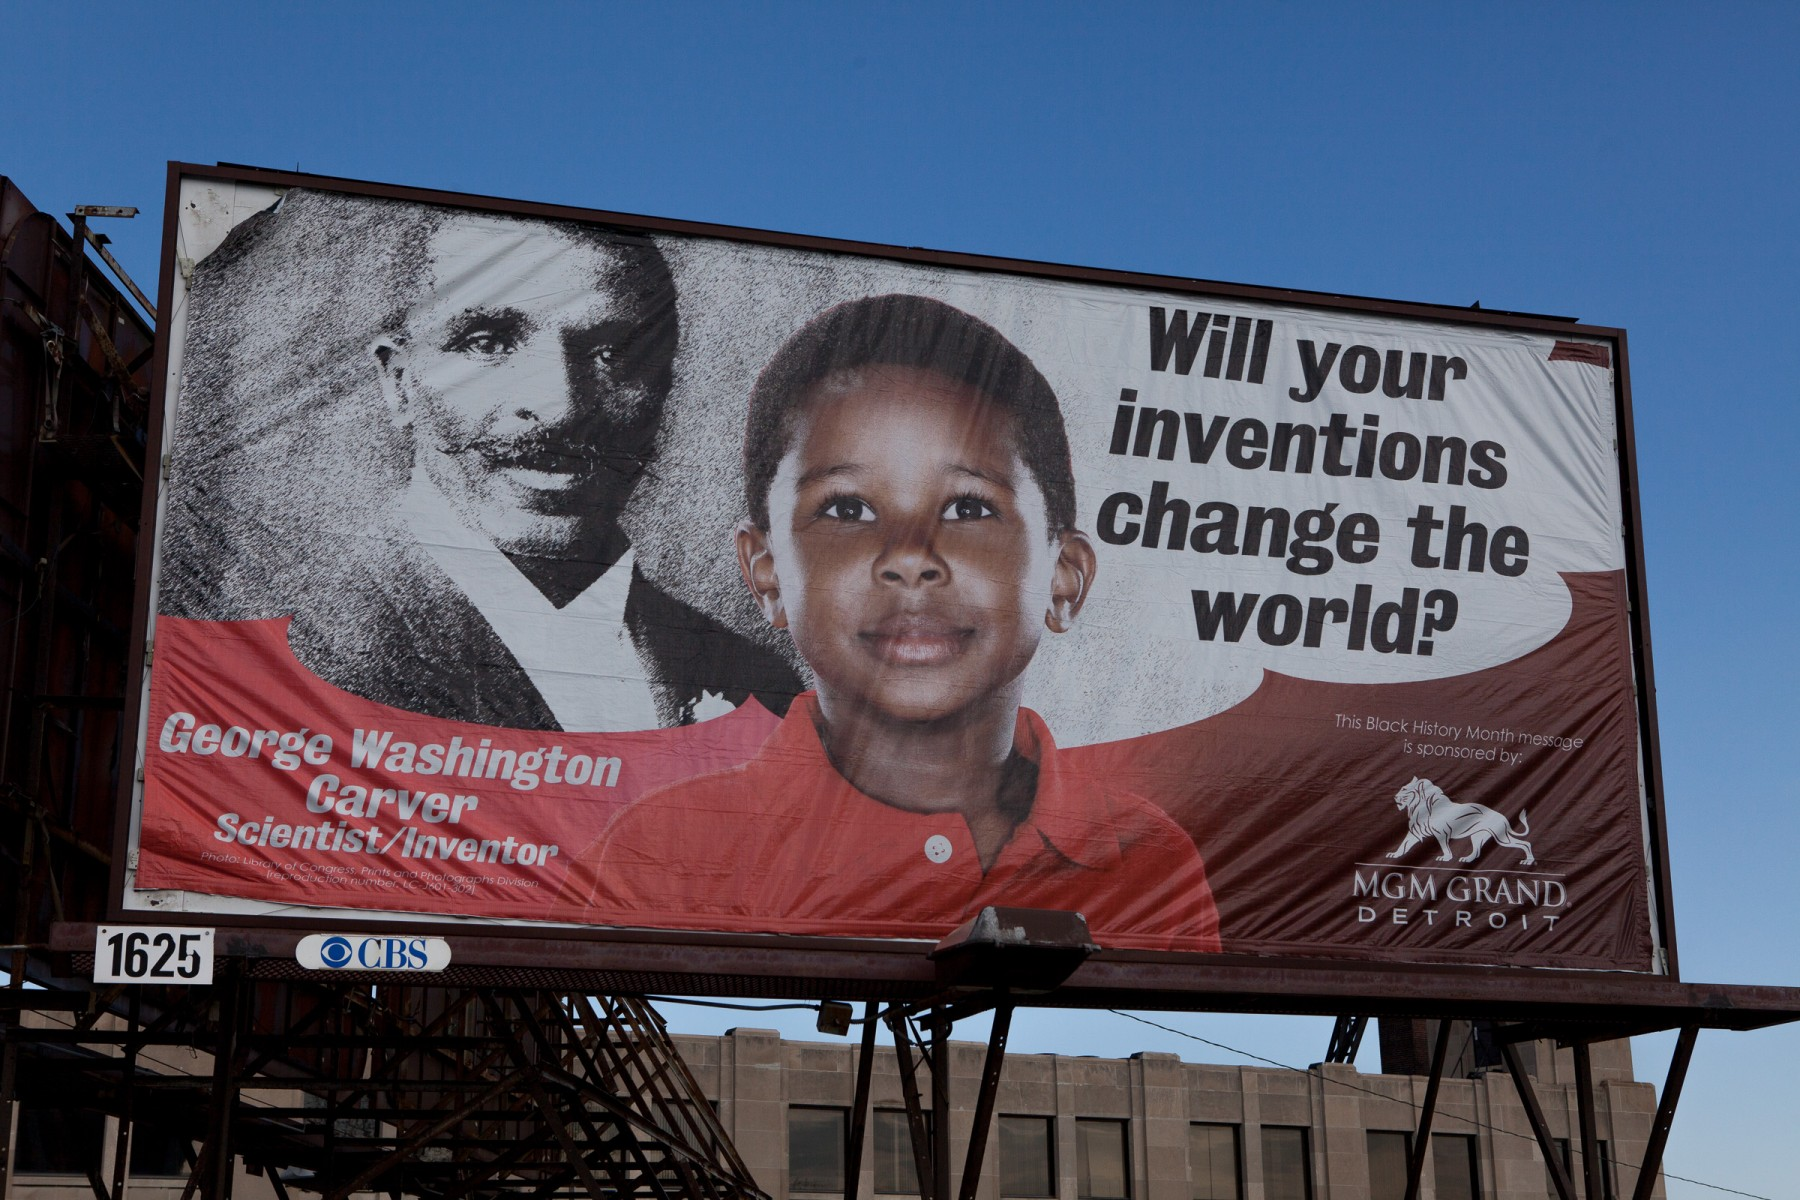 Black history month inspirational messaging brought to you by the big casino sucking the life out of your neighbourhood.